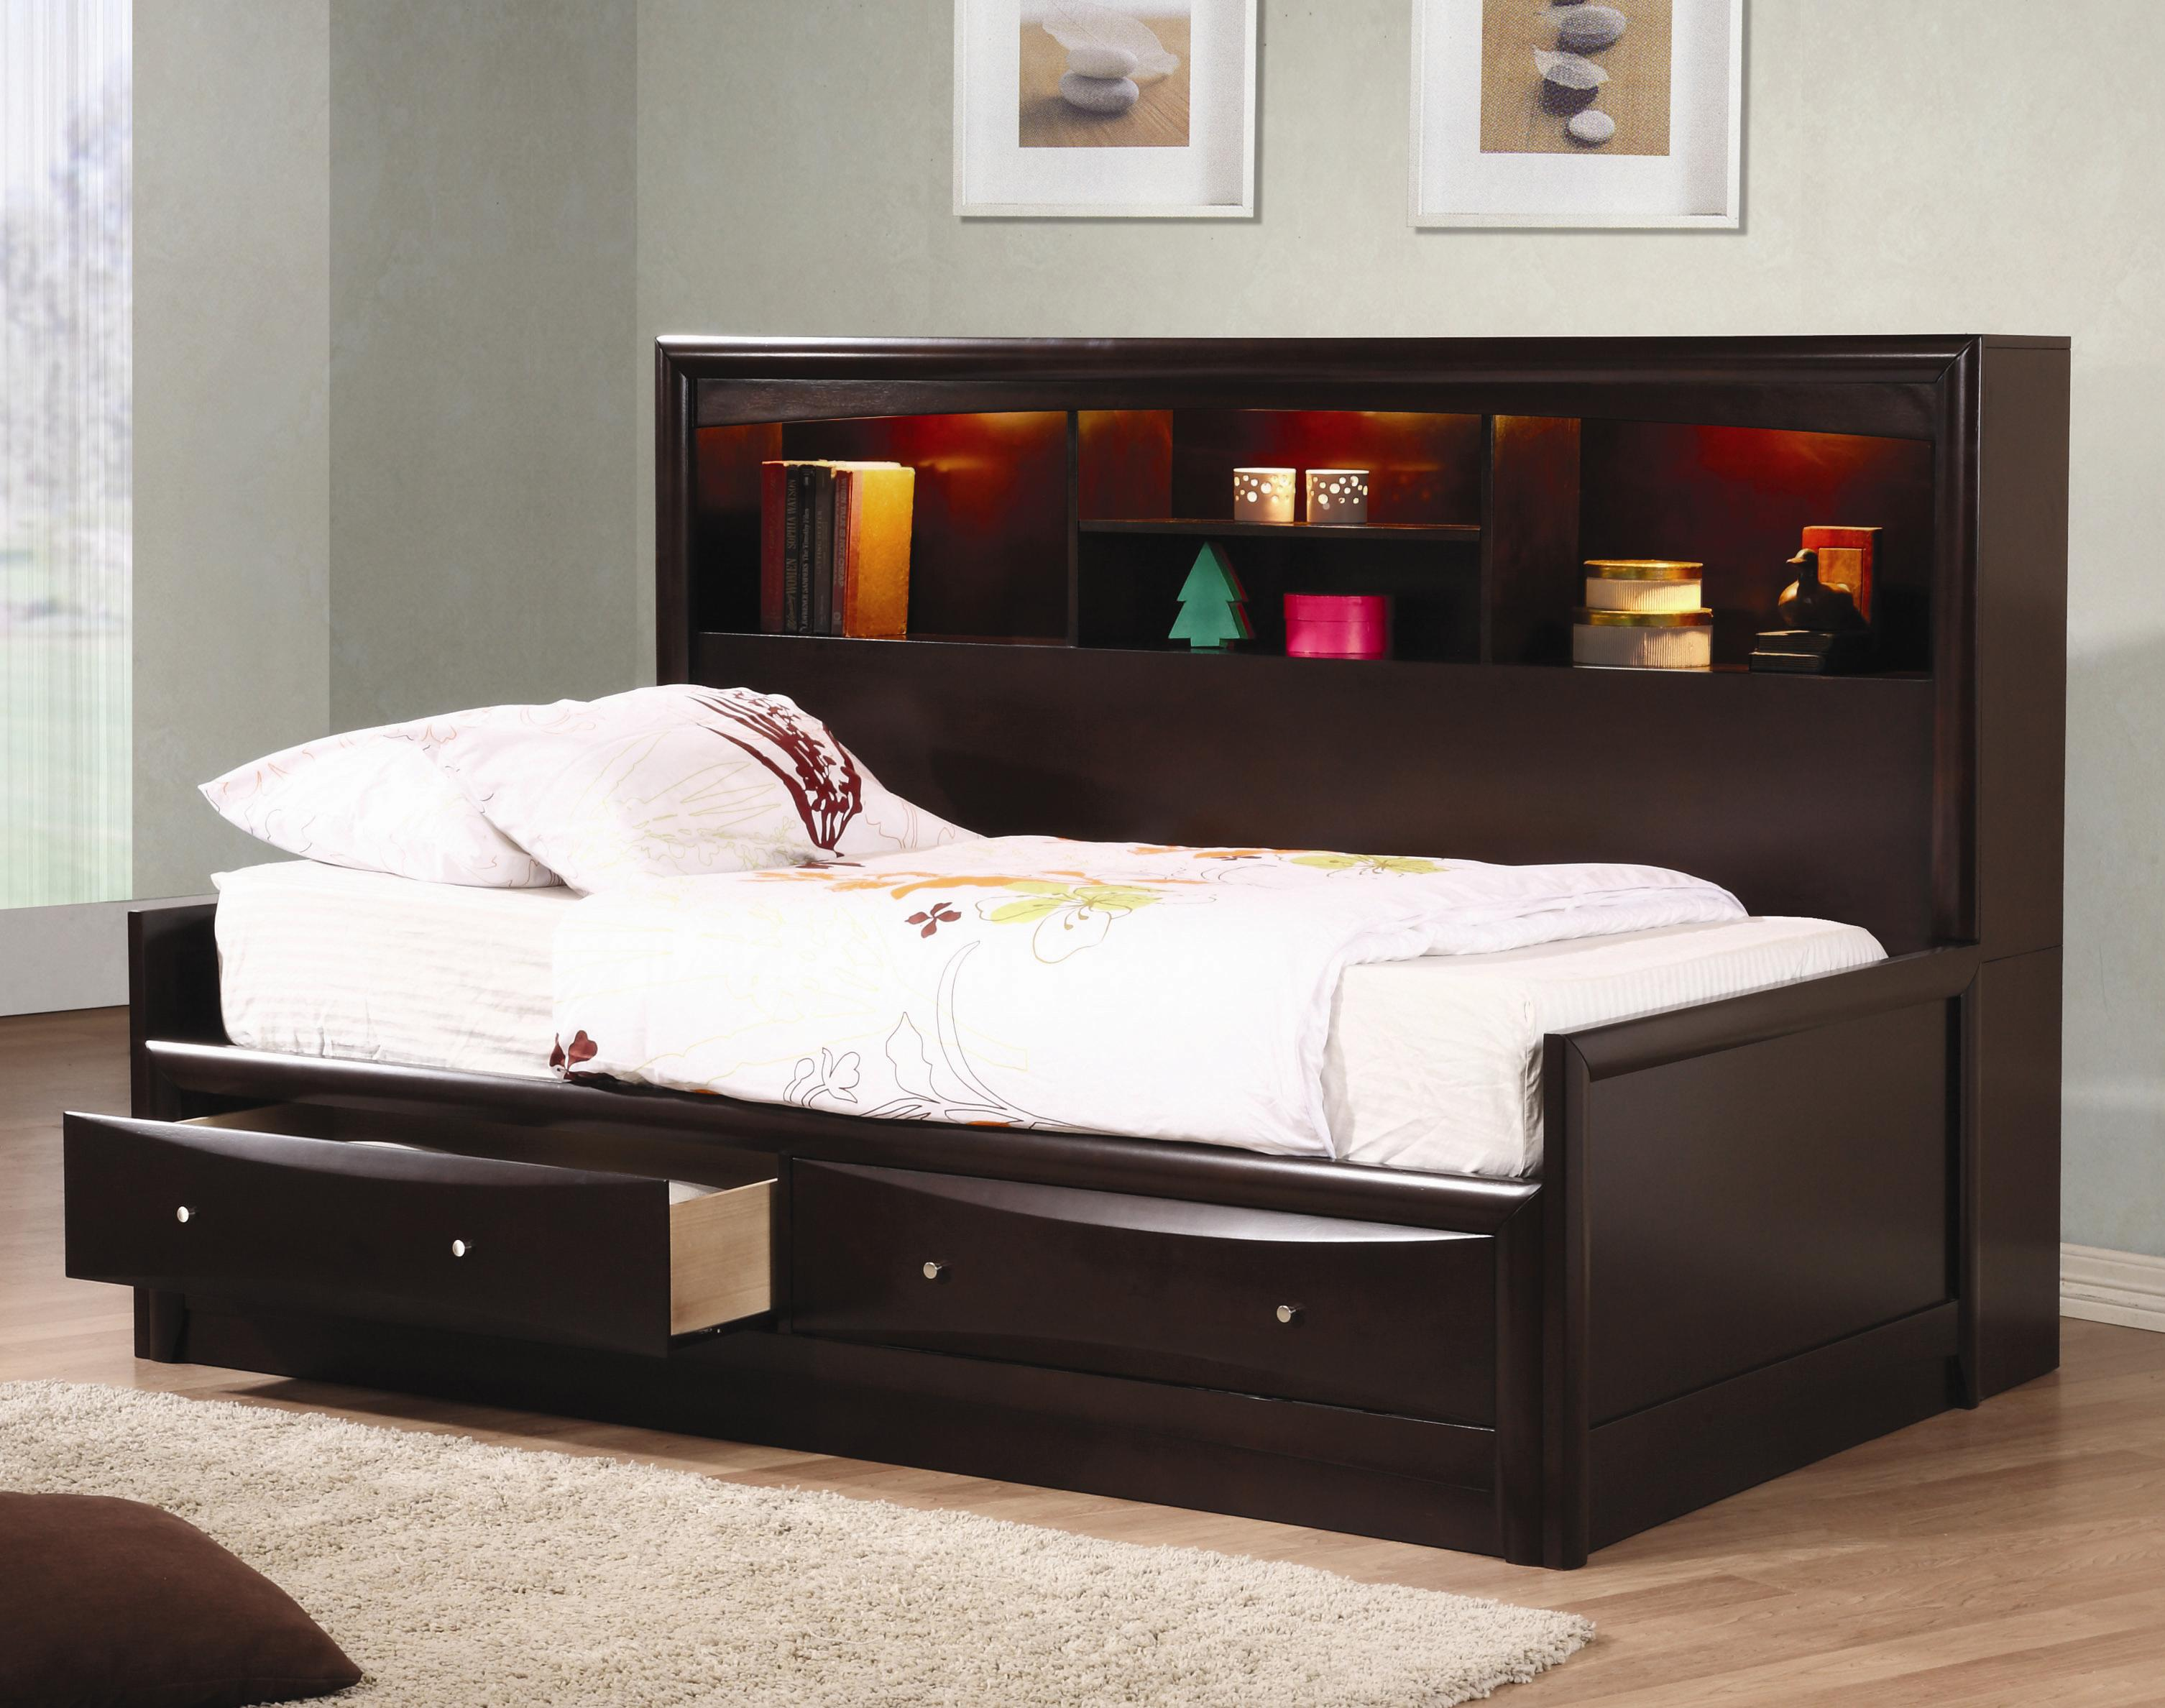 Coaster Phoenix Full Daybed - Item Number: 400410F